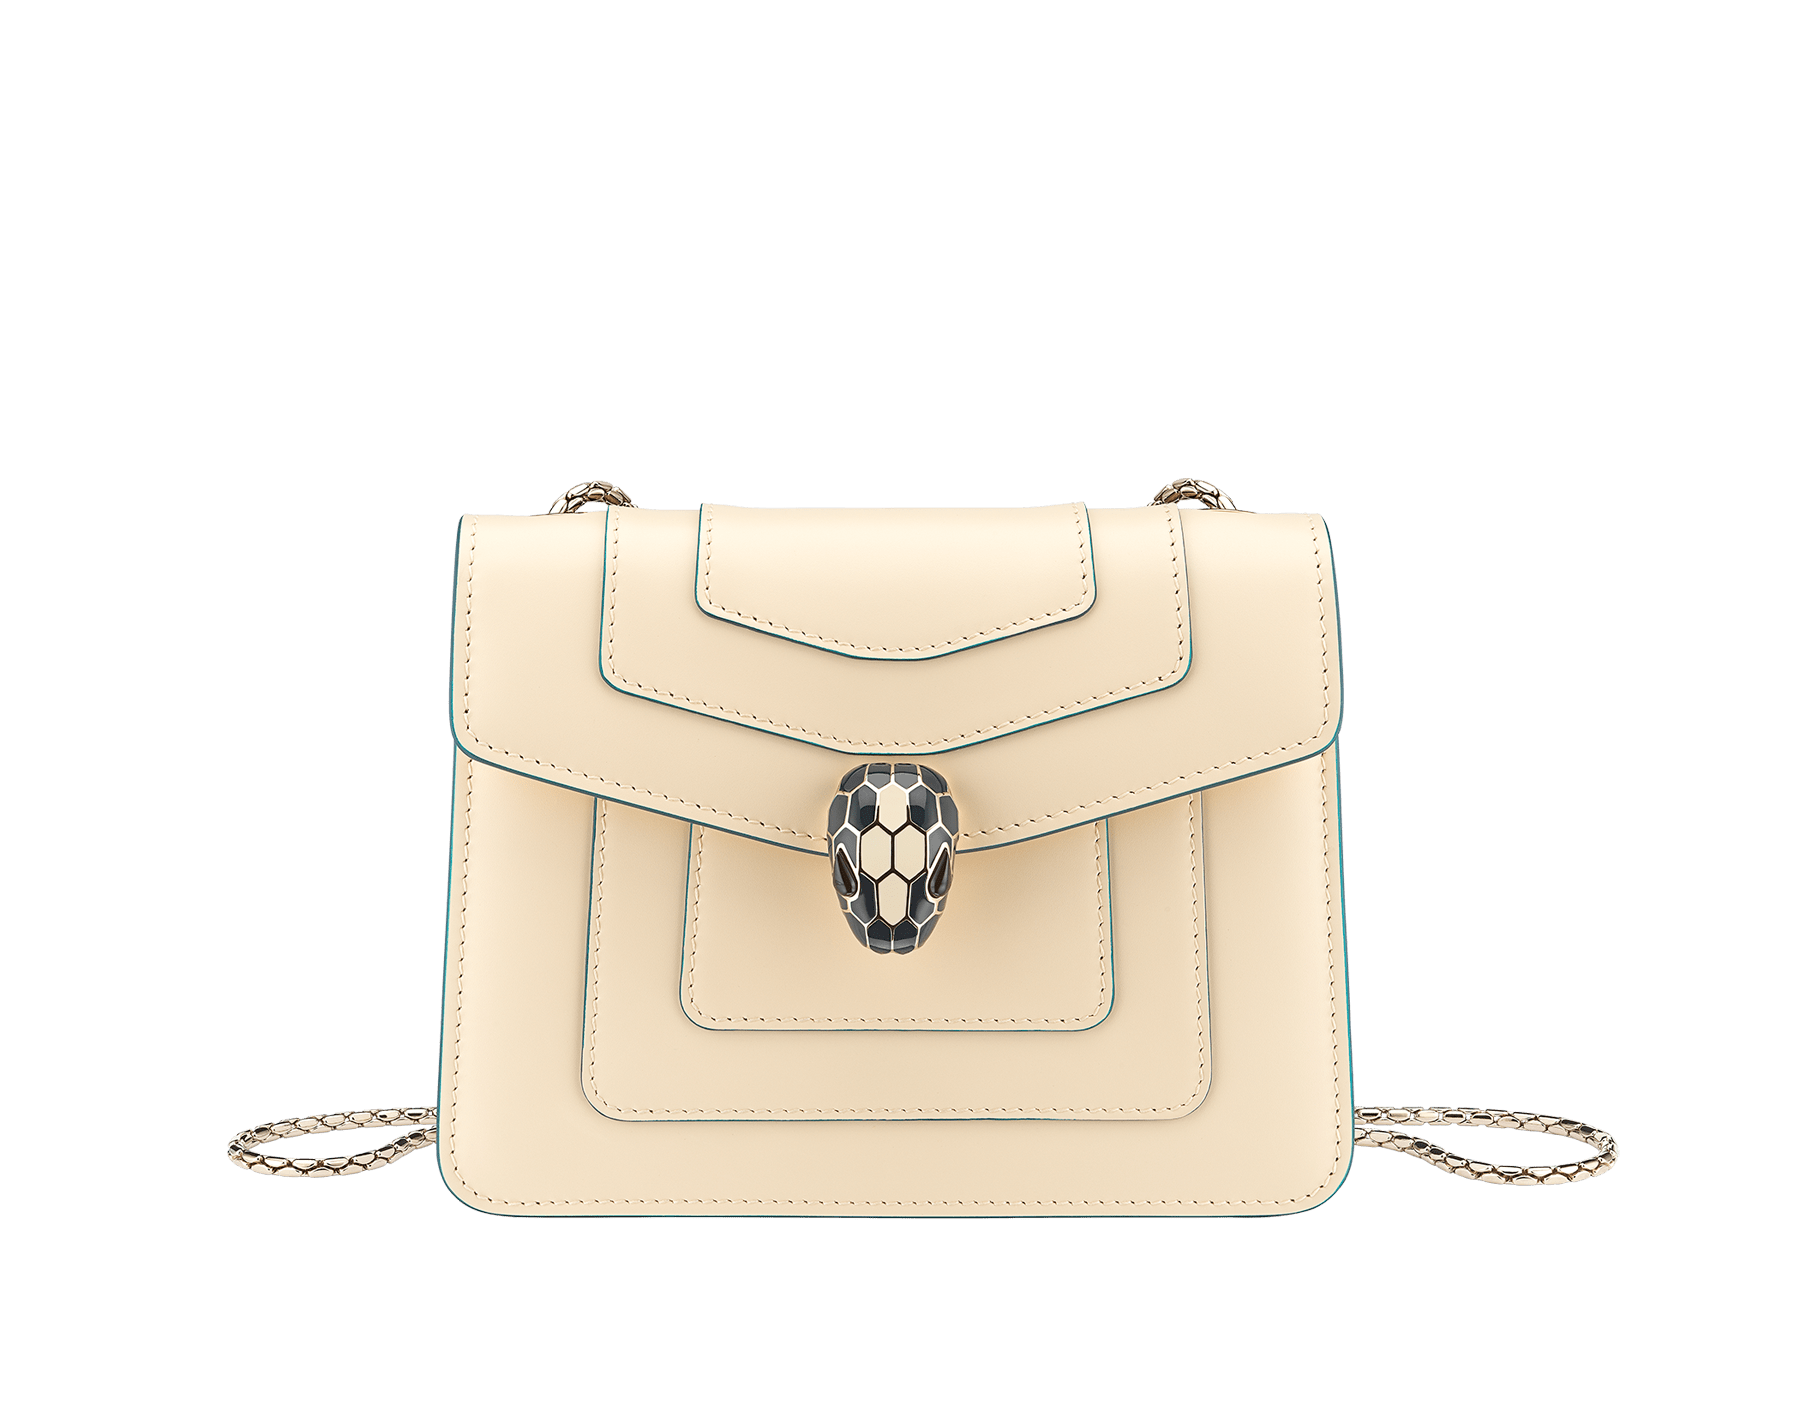 """""""Serpenti Forever"""" crossbody bag in peach calf leather with Pink Spinel fuchsia grosgrain inner lining. Iconic snakehead closure in light gold-plated brass enriched with black and white agate enamel and green malachite eyes. 422-CLb image 1"""